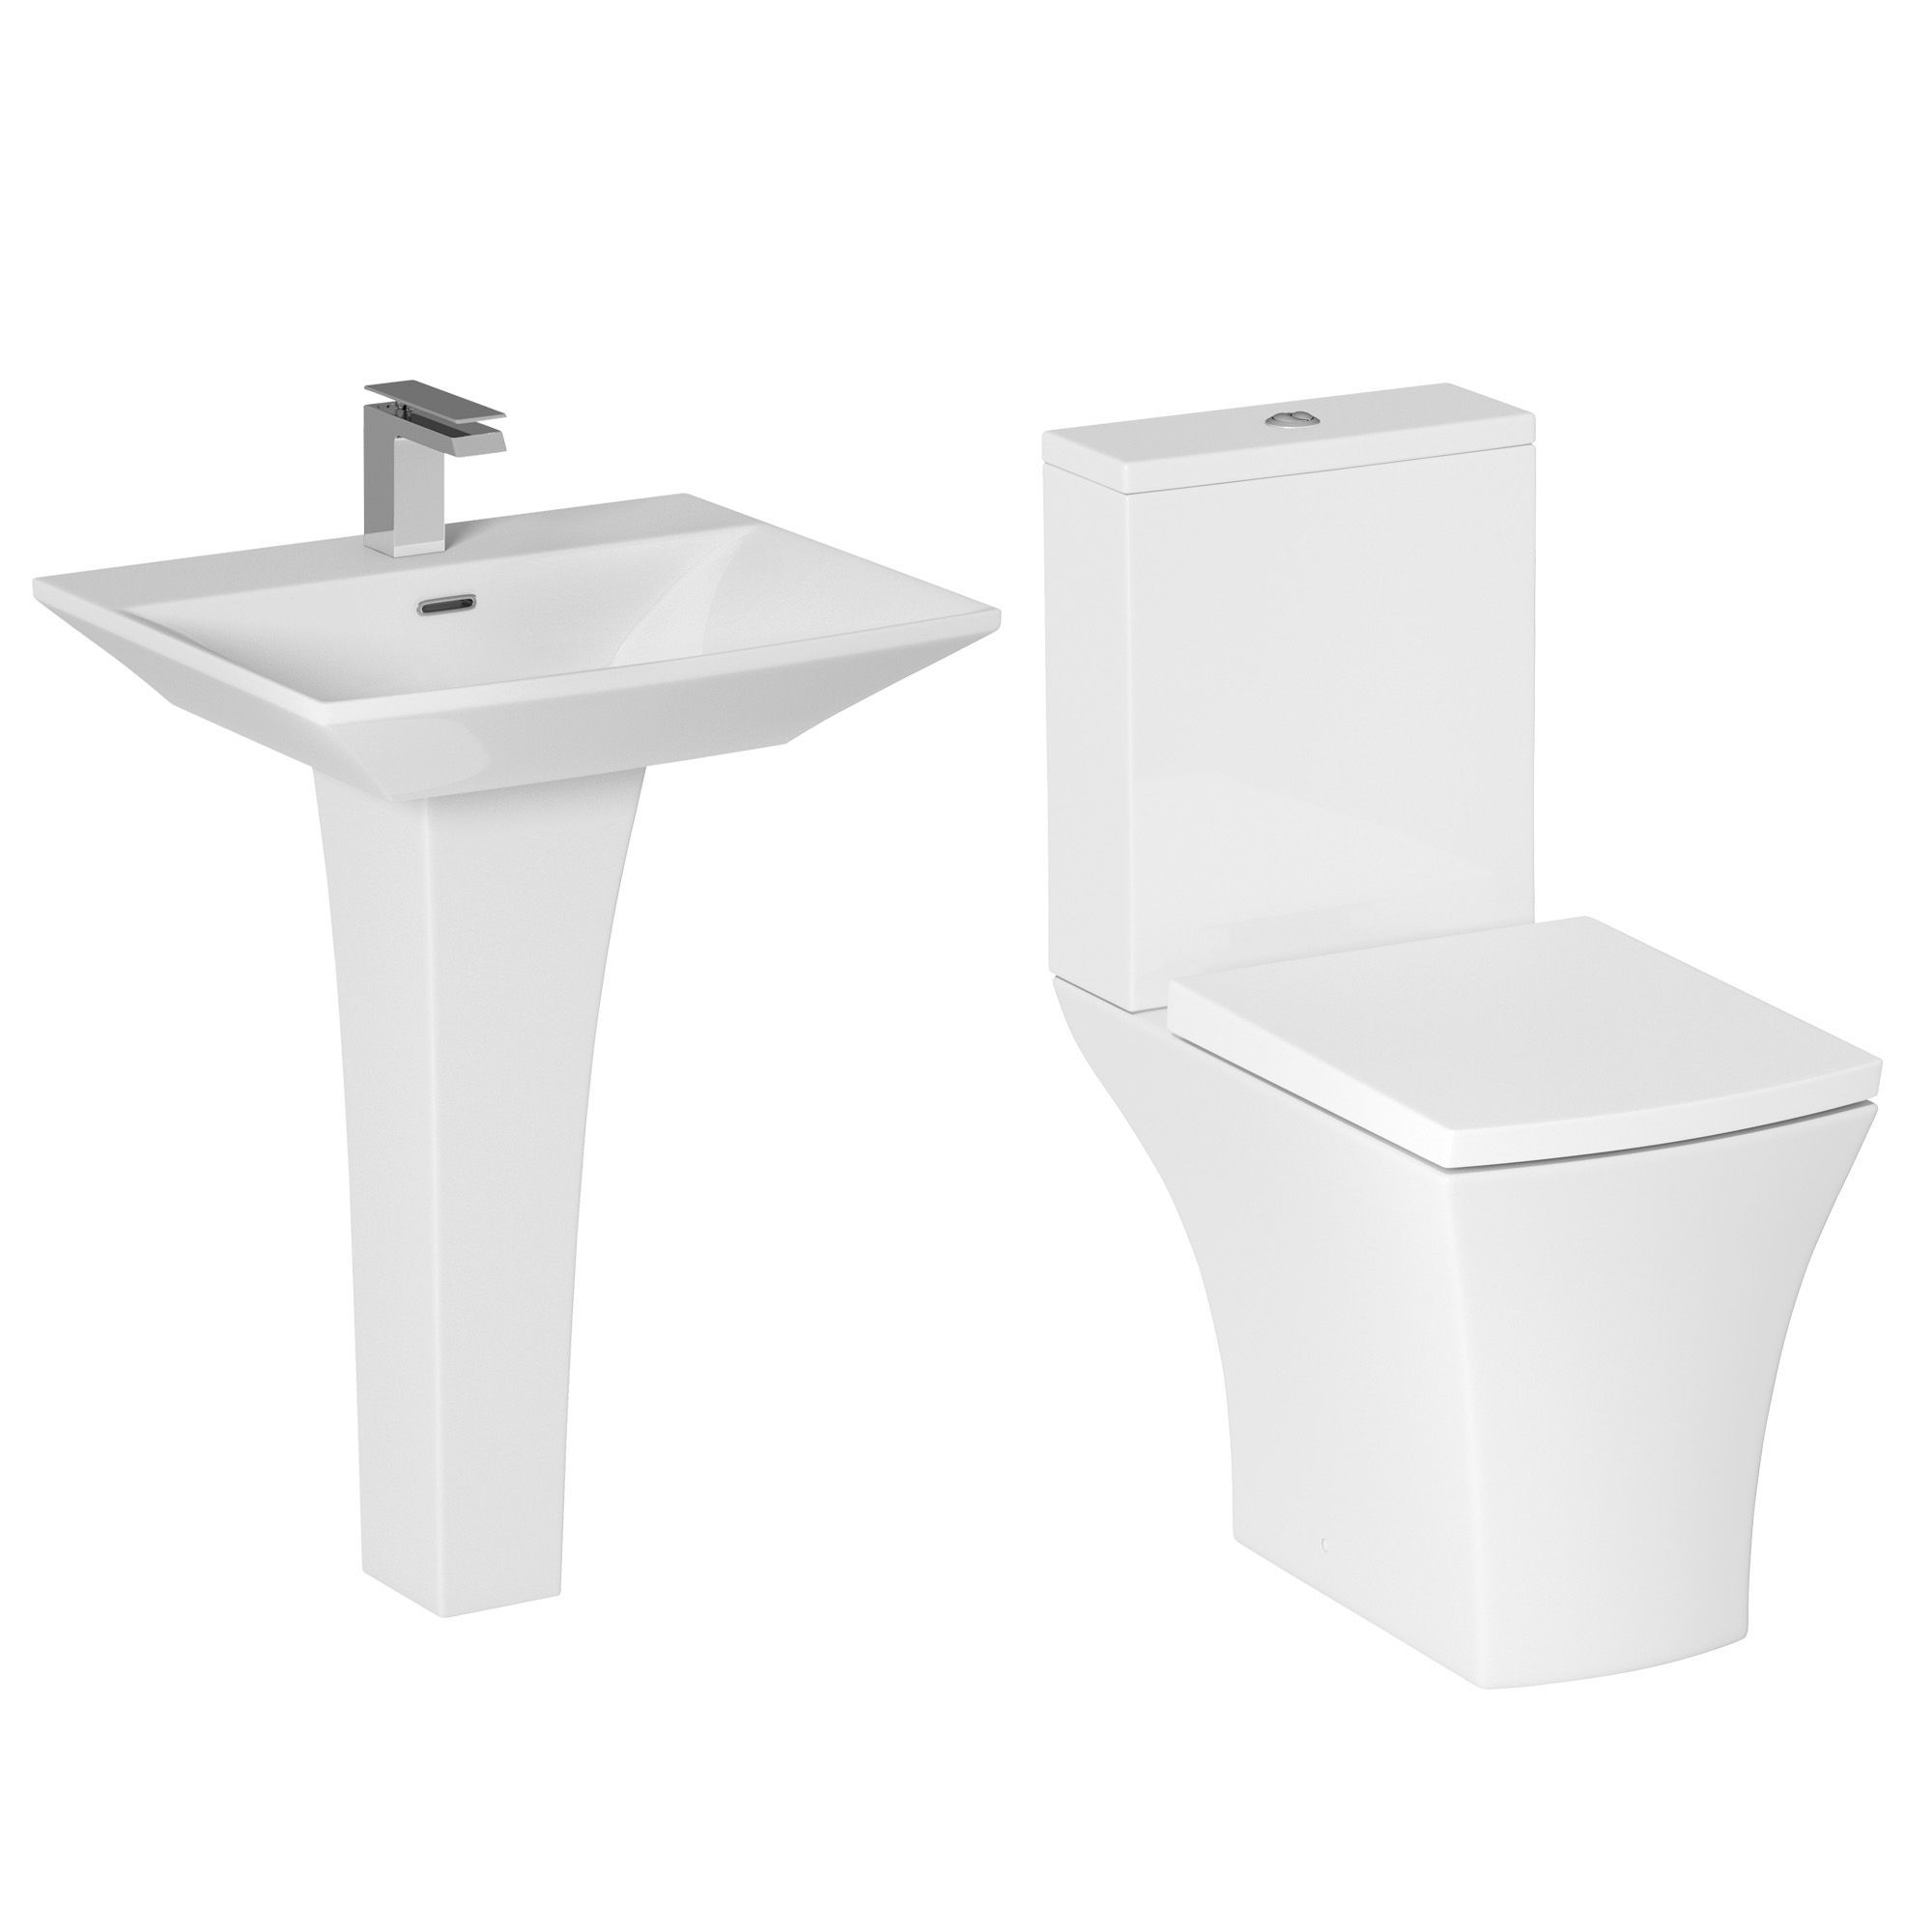 sizes combo for elderly designs design bathroom modern contemporary universal sink bathtub with shower and small ideas pedestal bath white